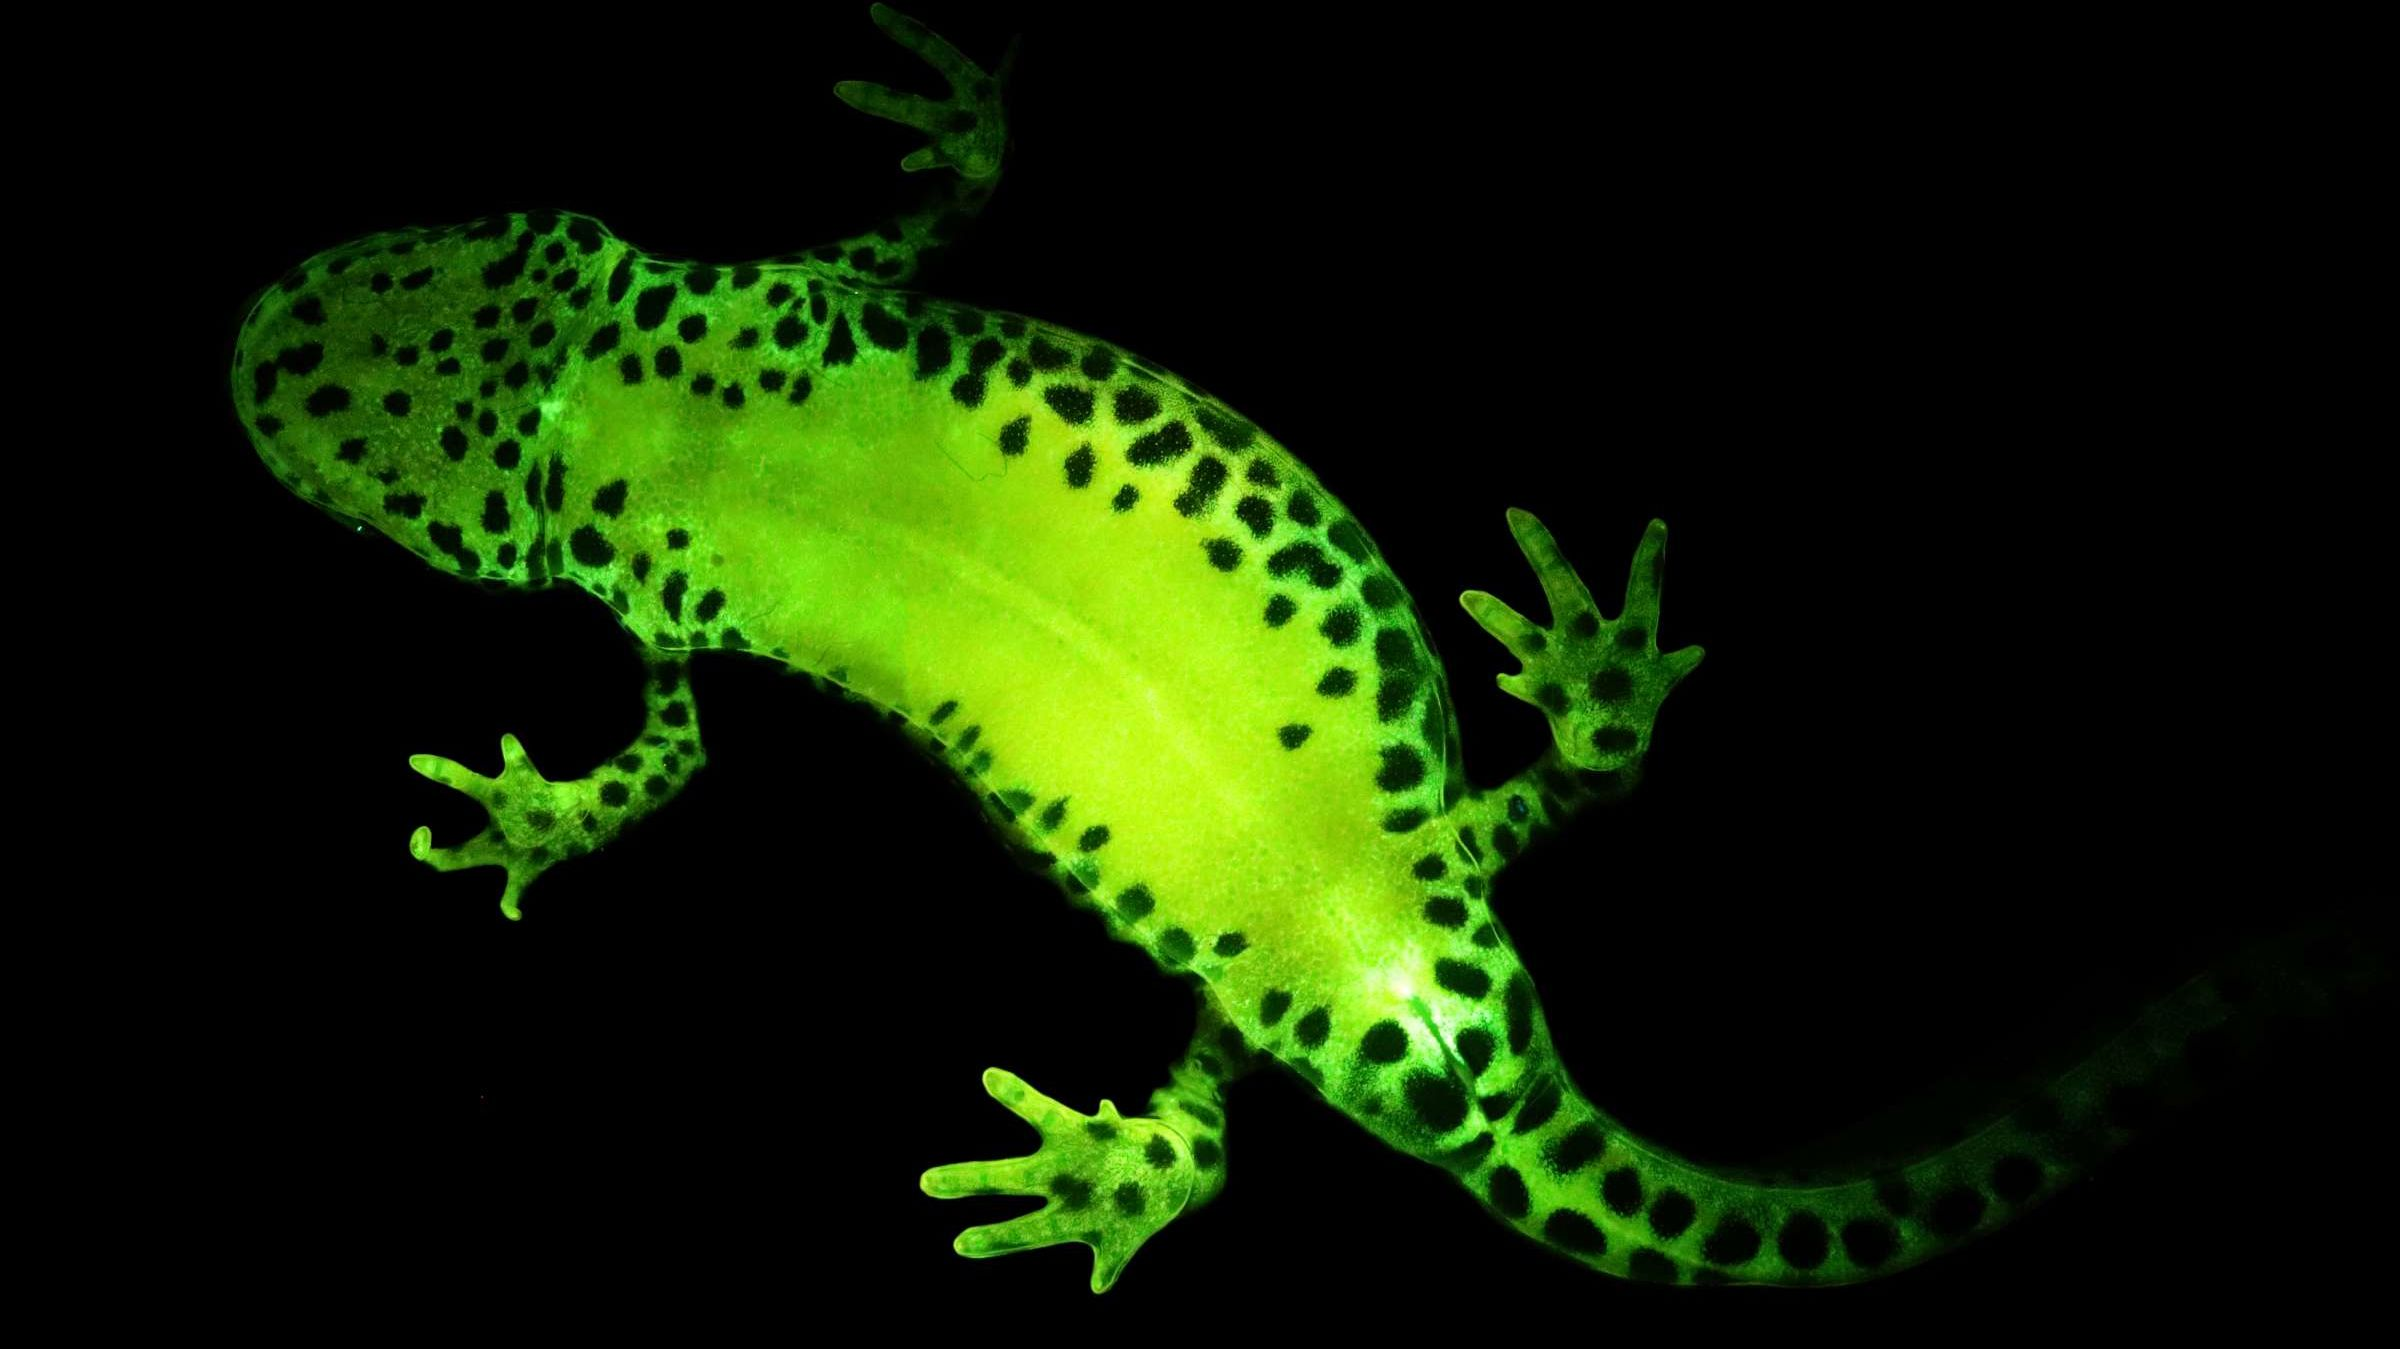 It's Easy Being Green: Most Amphibians Are Biofluorescent, Study Finds